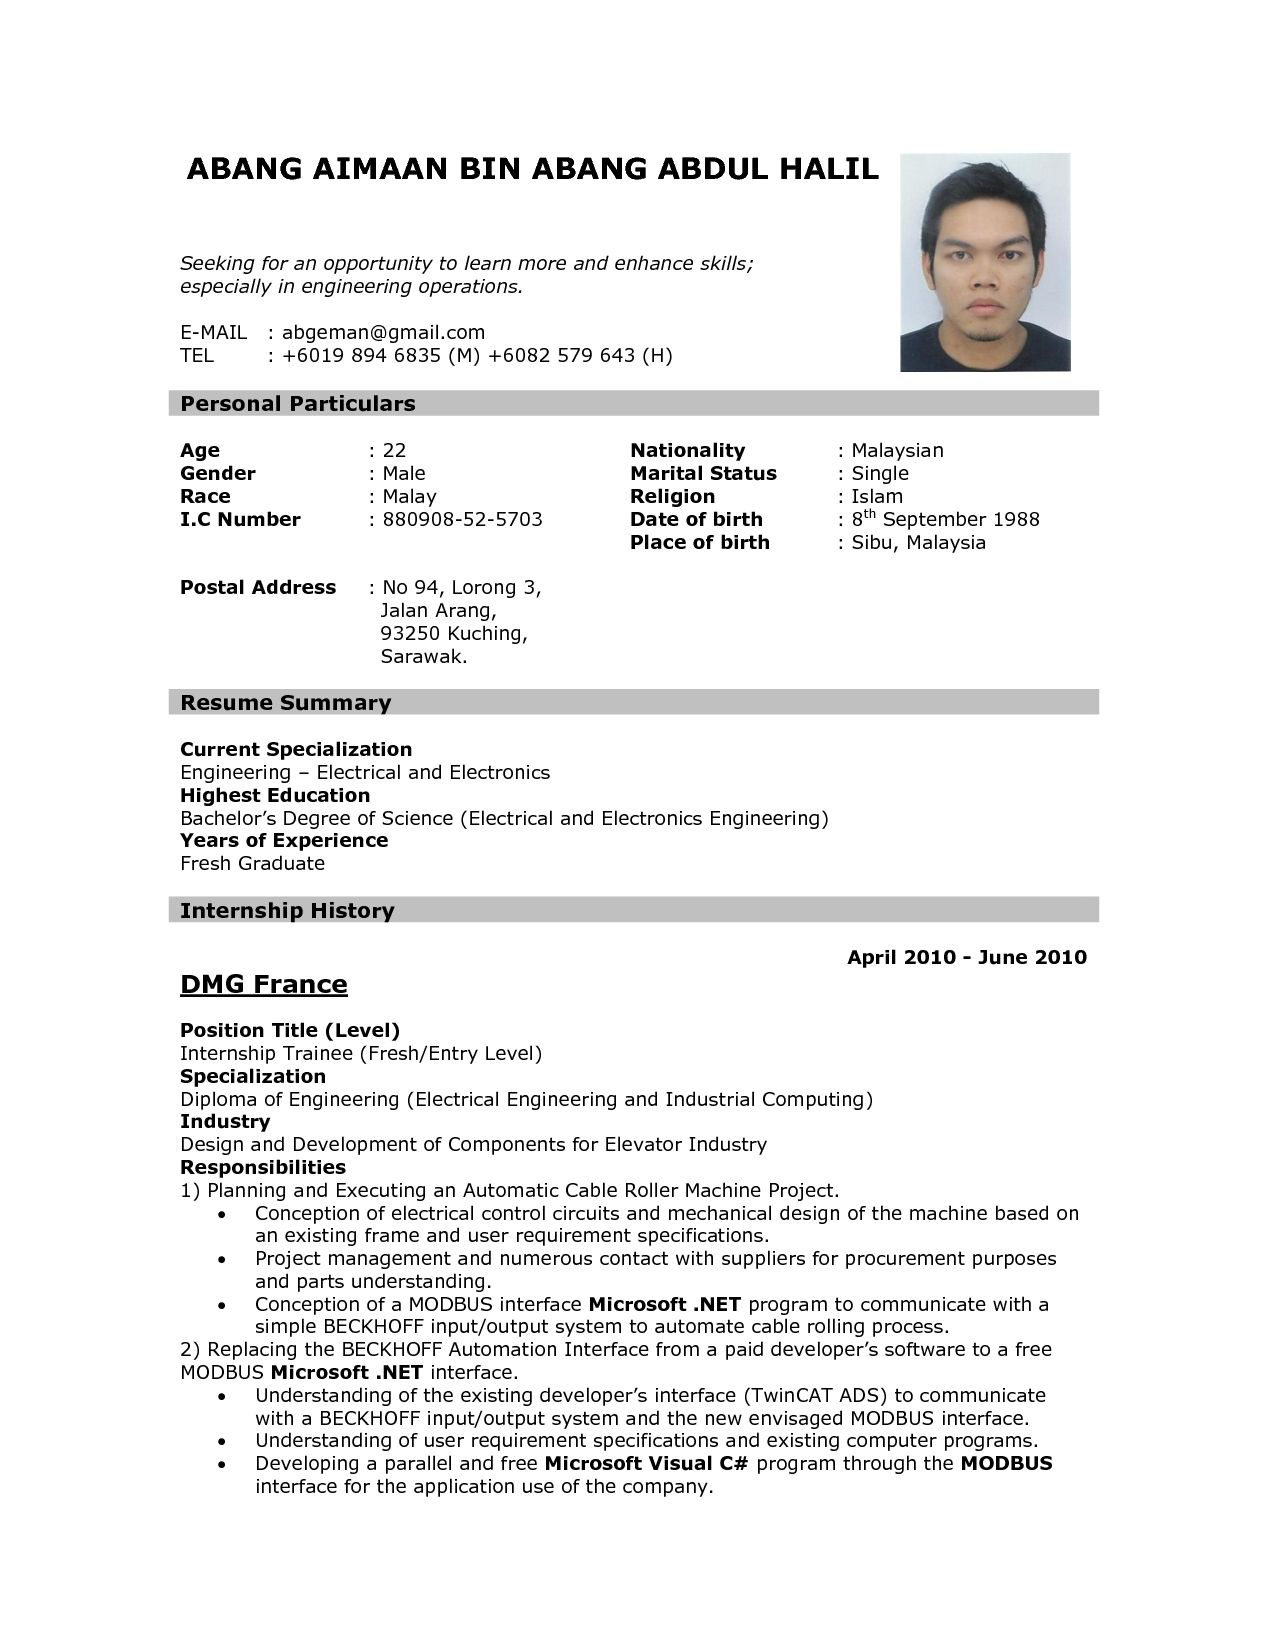 Resume Format For Job Format Resume Job Resume Format Job